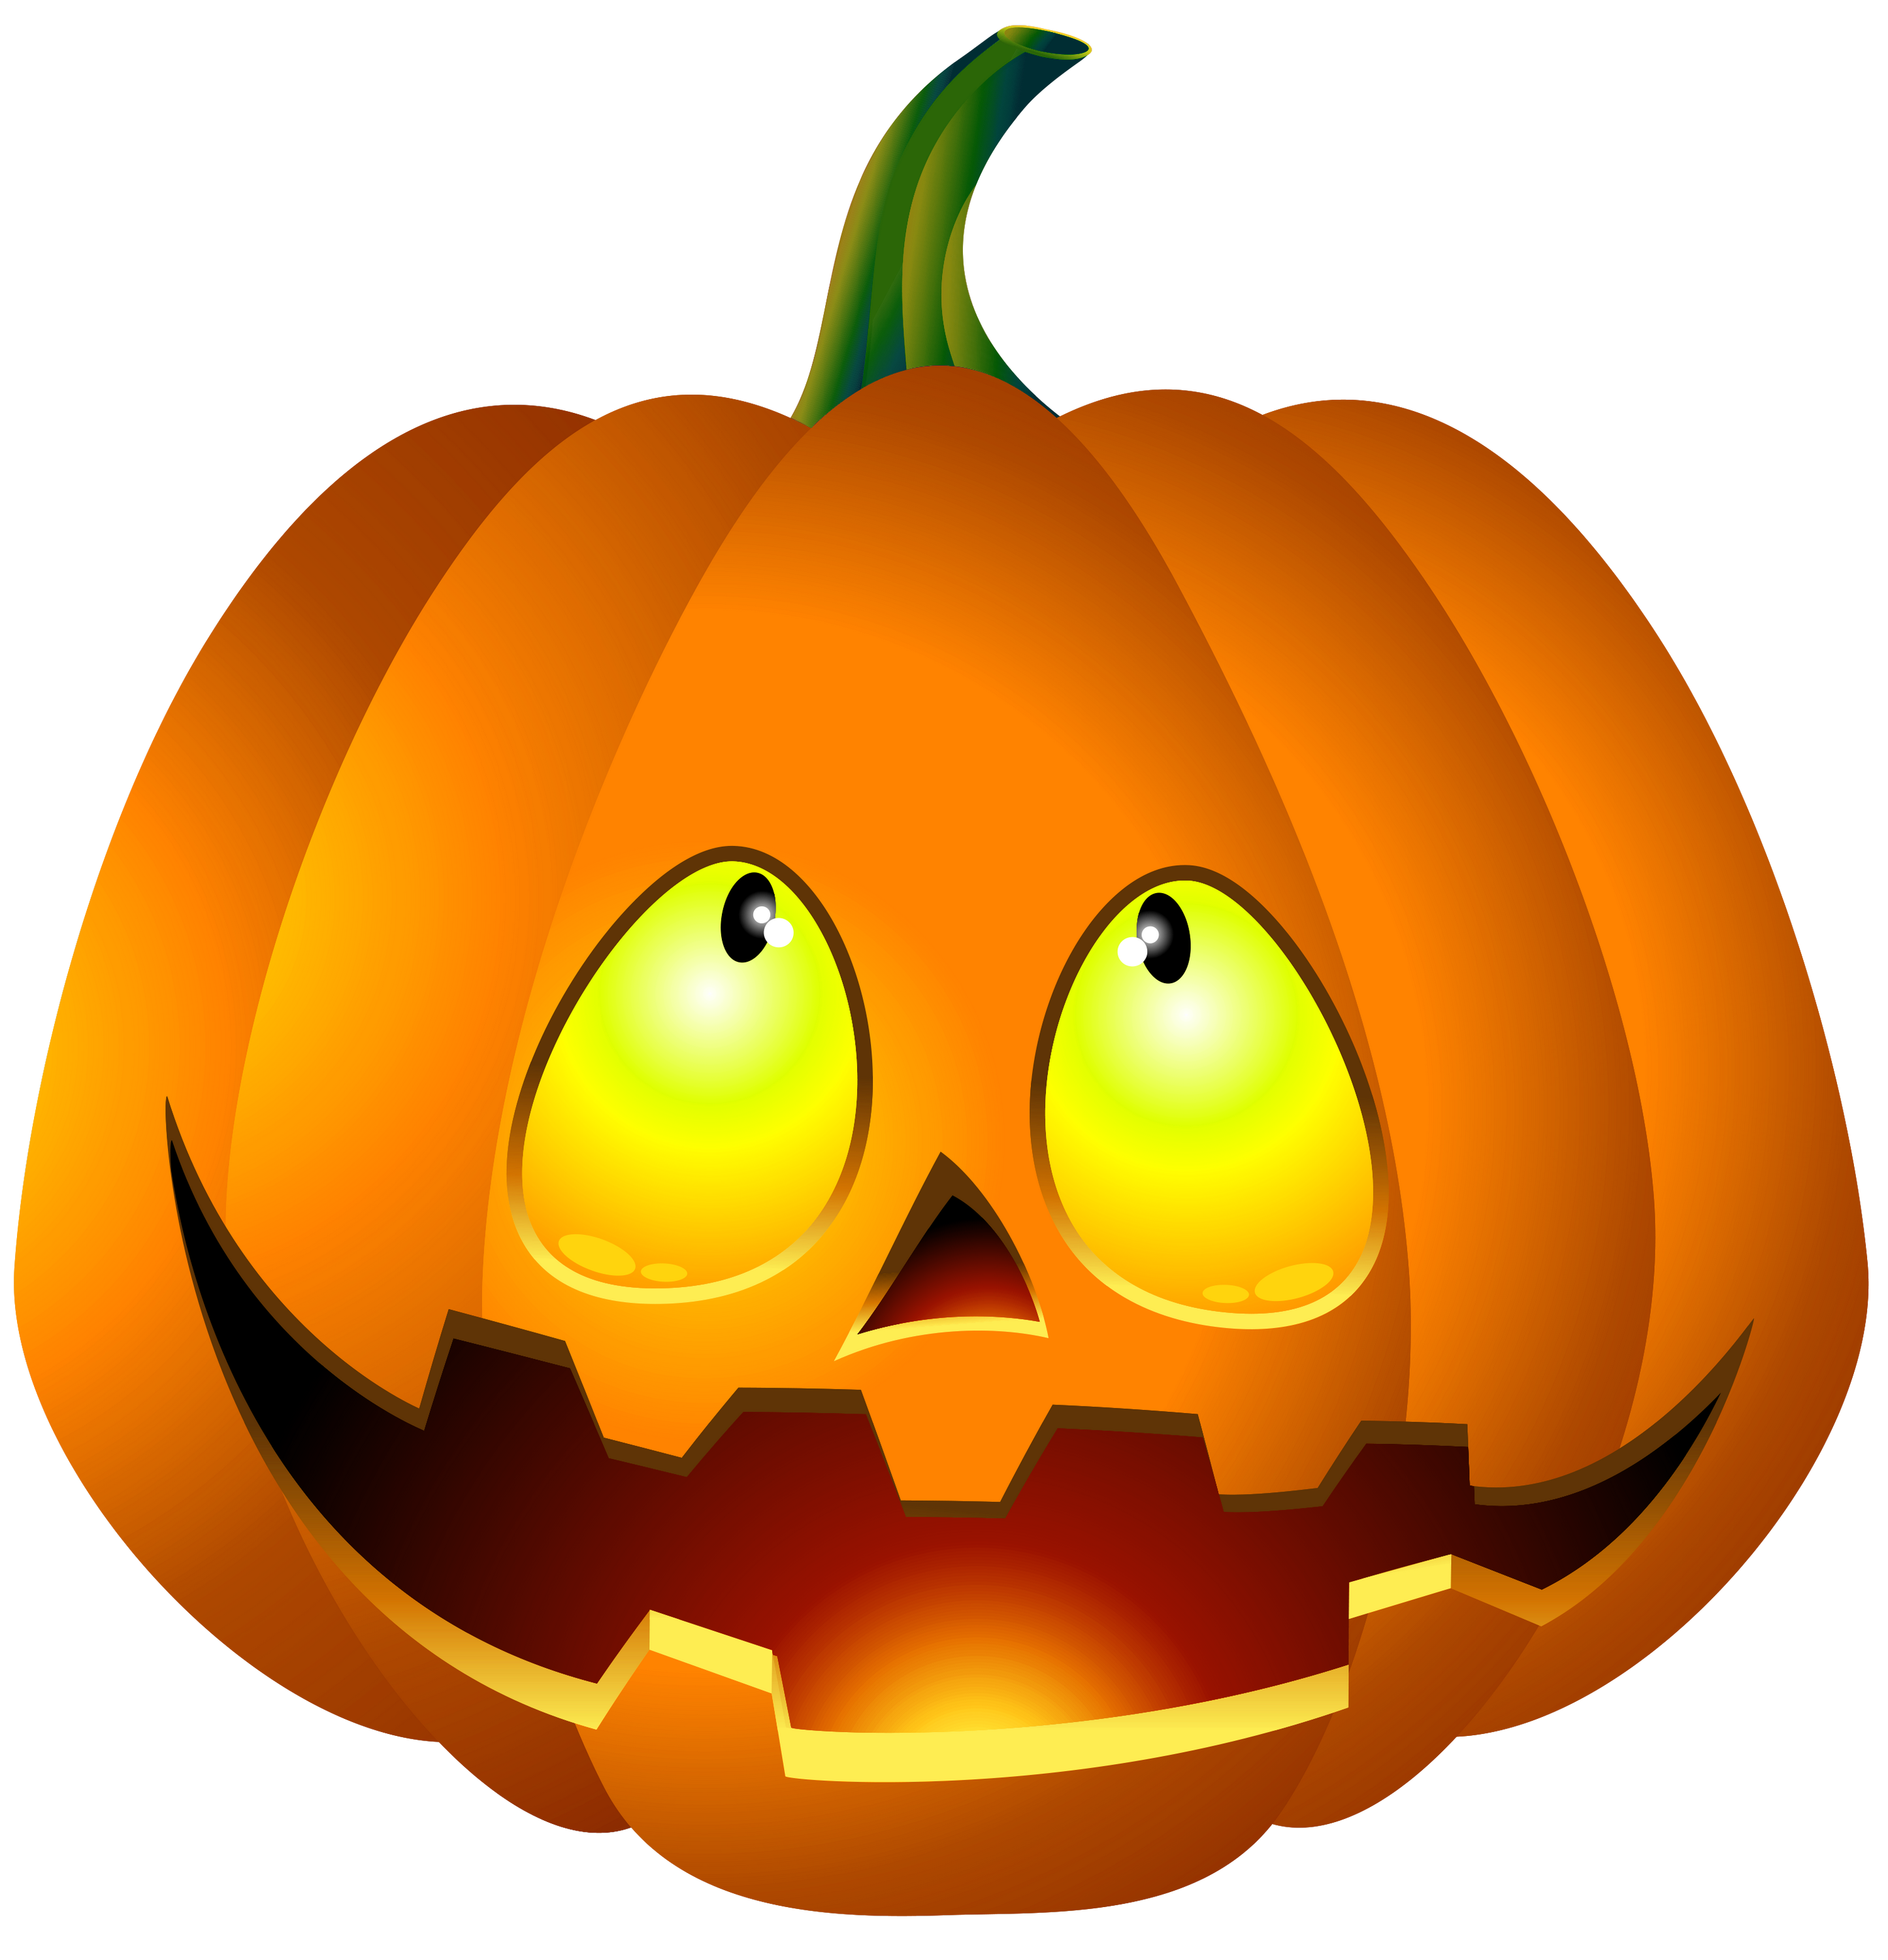 Png picture gallery yopriceville. Halloween clipart pumpkin patch